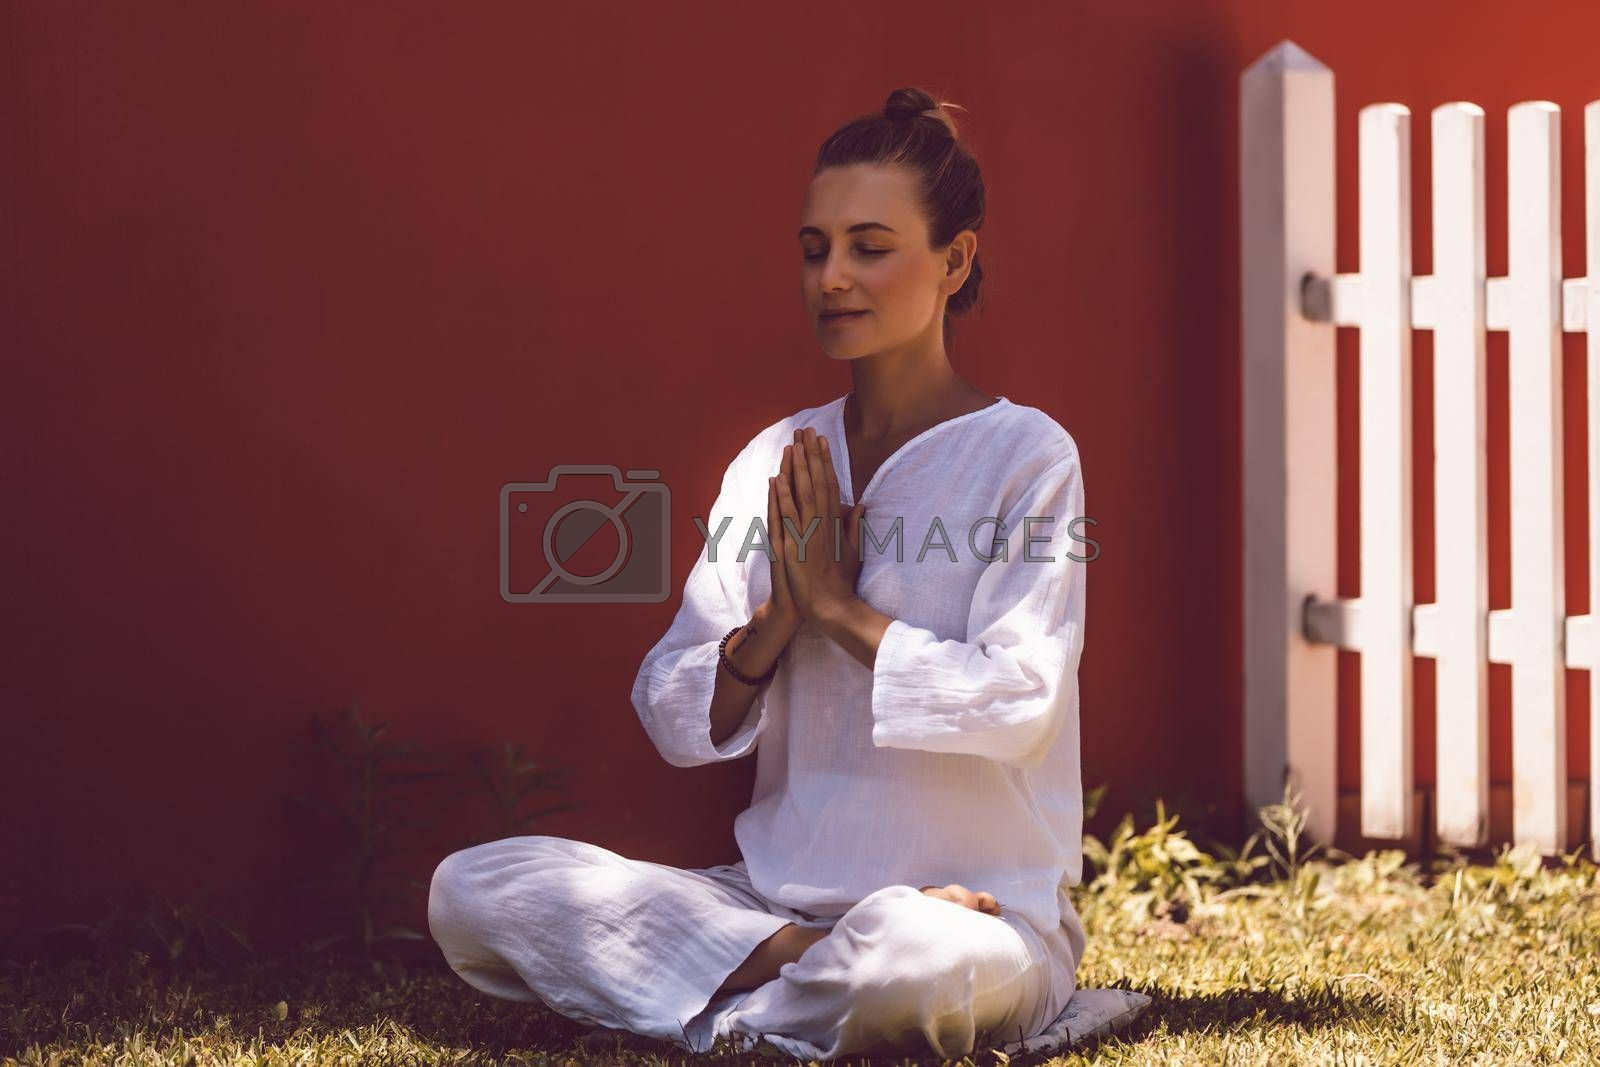 Beautiful Peaceful Female Doing Yoga Exercises in the Backyard. Meditates with Closed Eyes in Lotus Position. Healthy Lifestyle. Body Mind and Soul. Mindfulness Concept